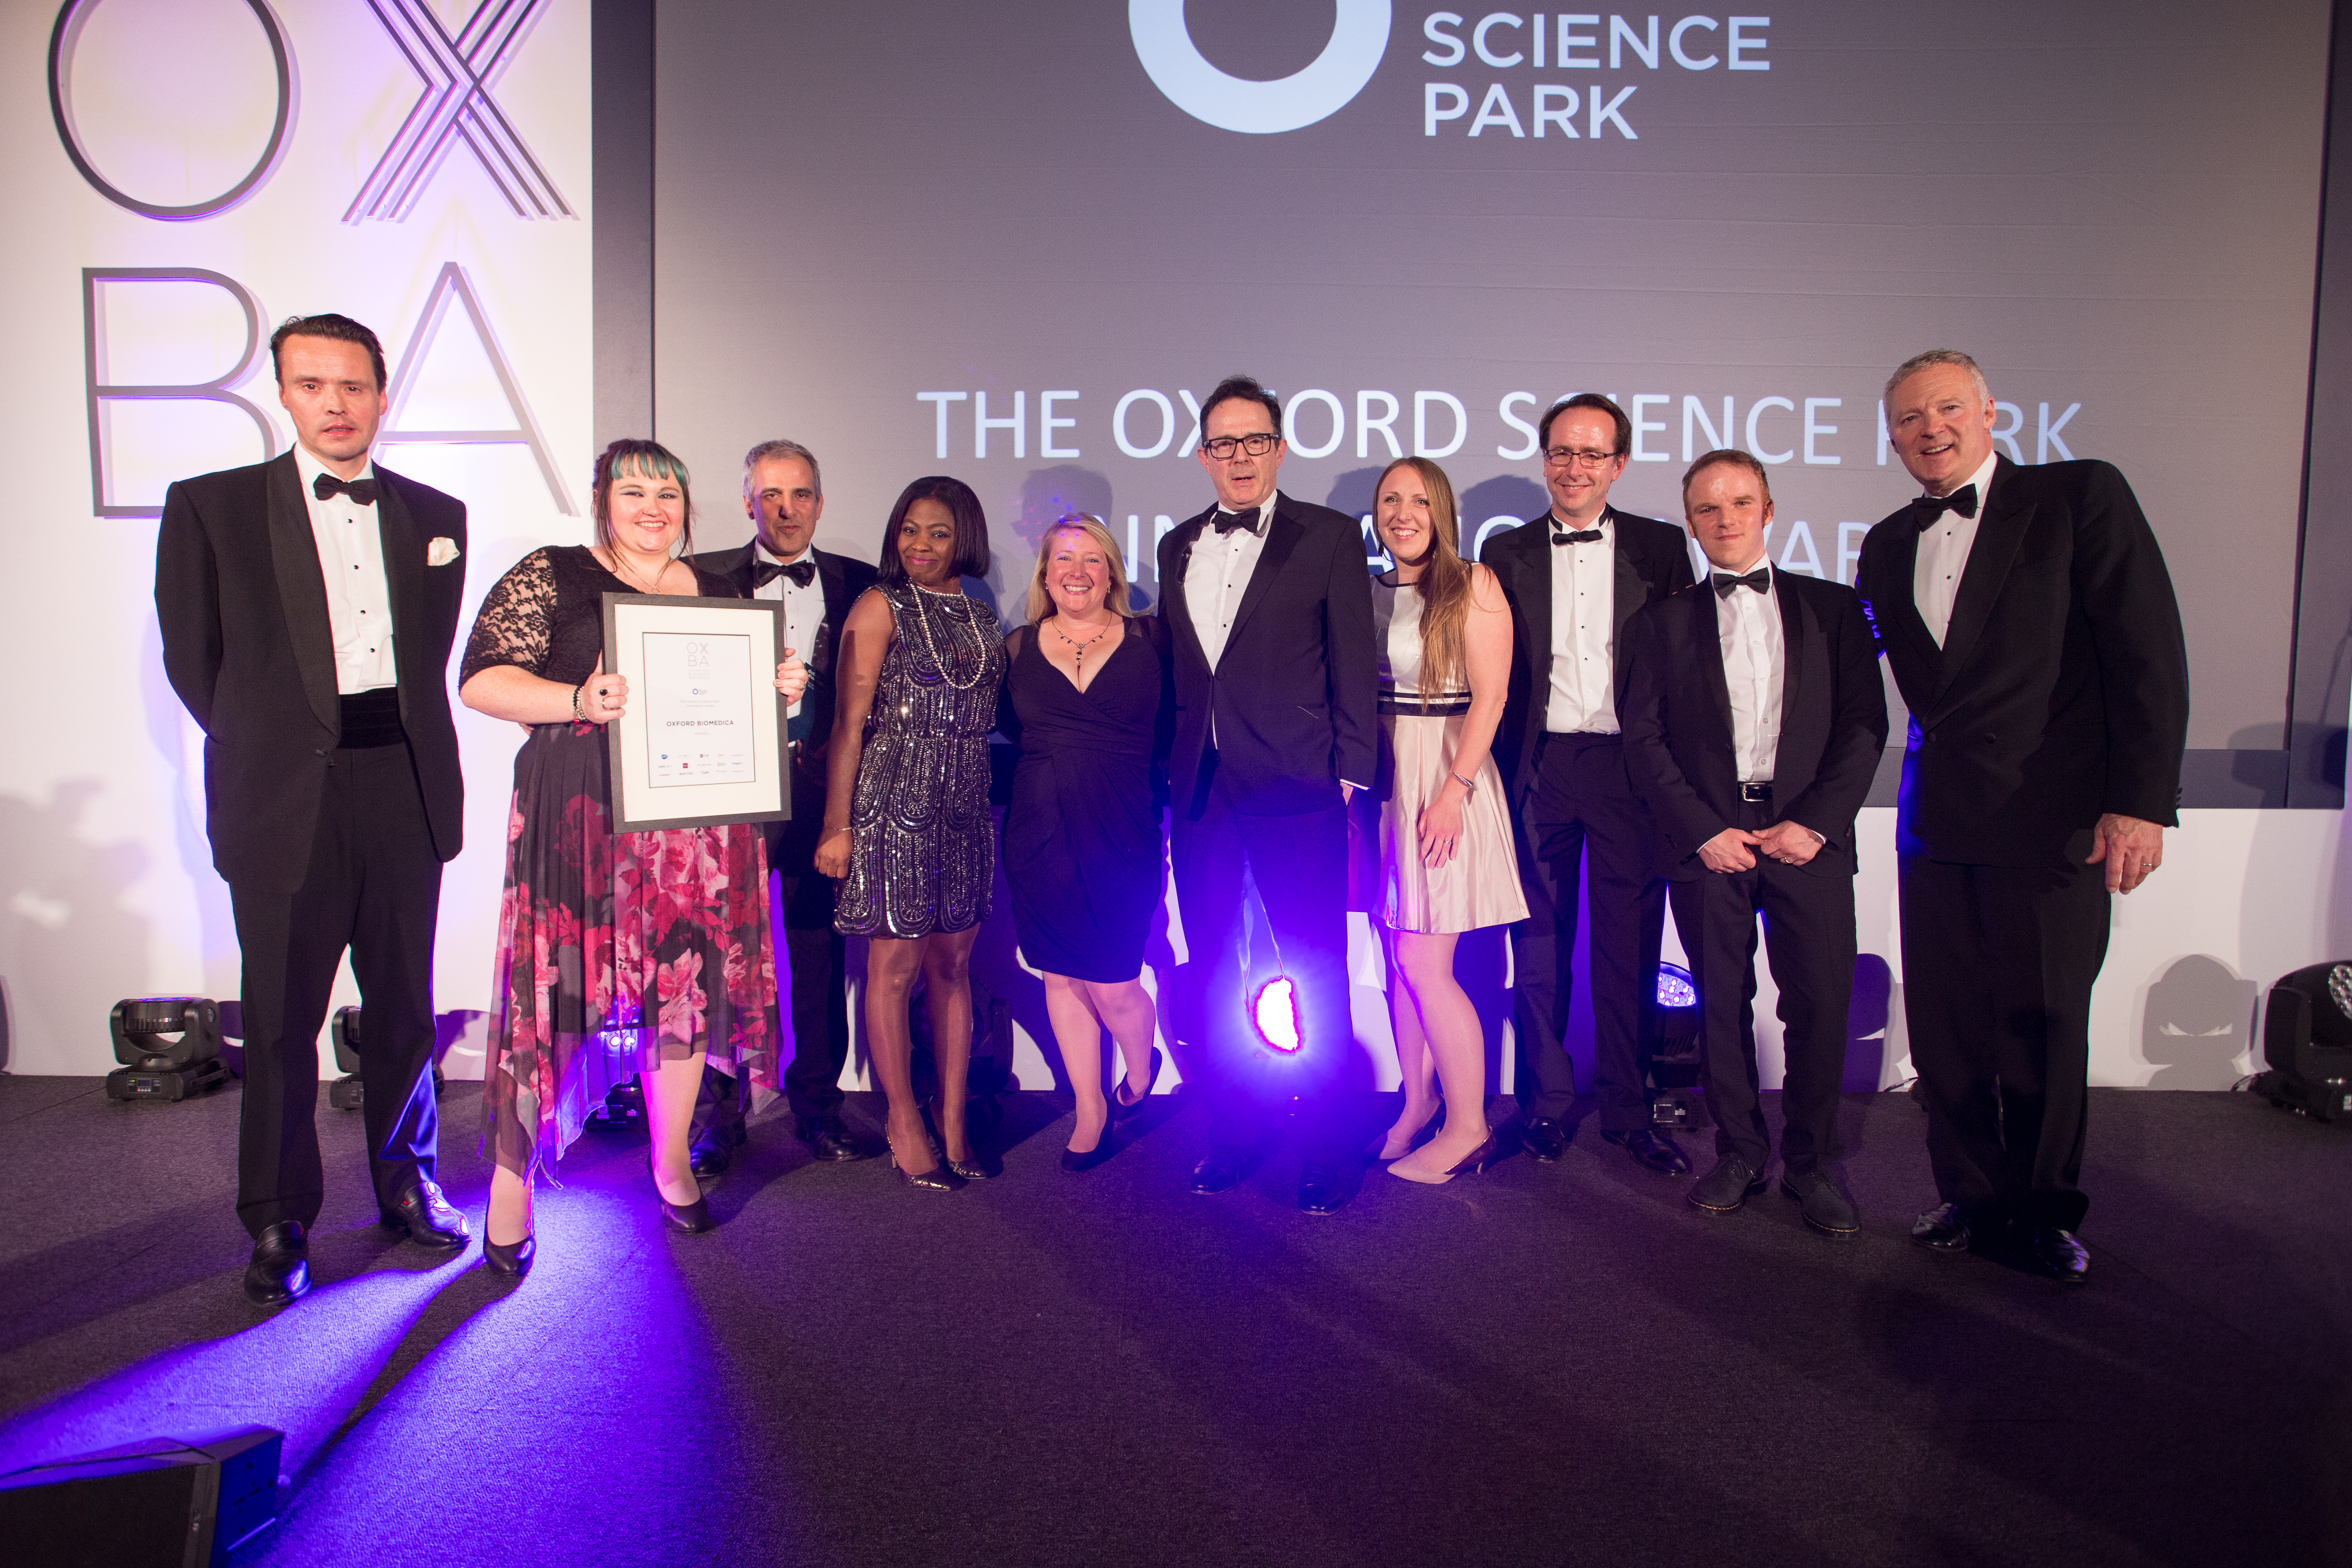 The Oxford Science Park Innovation Award